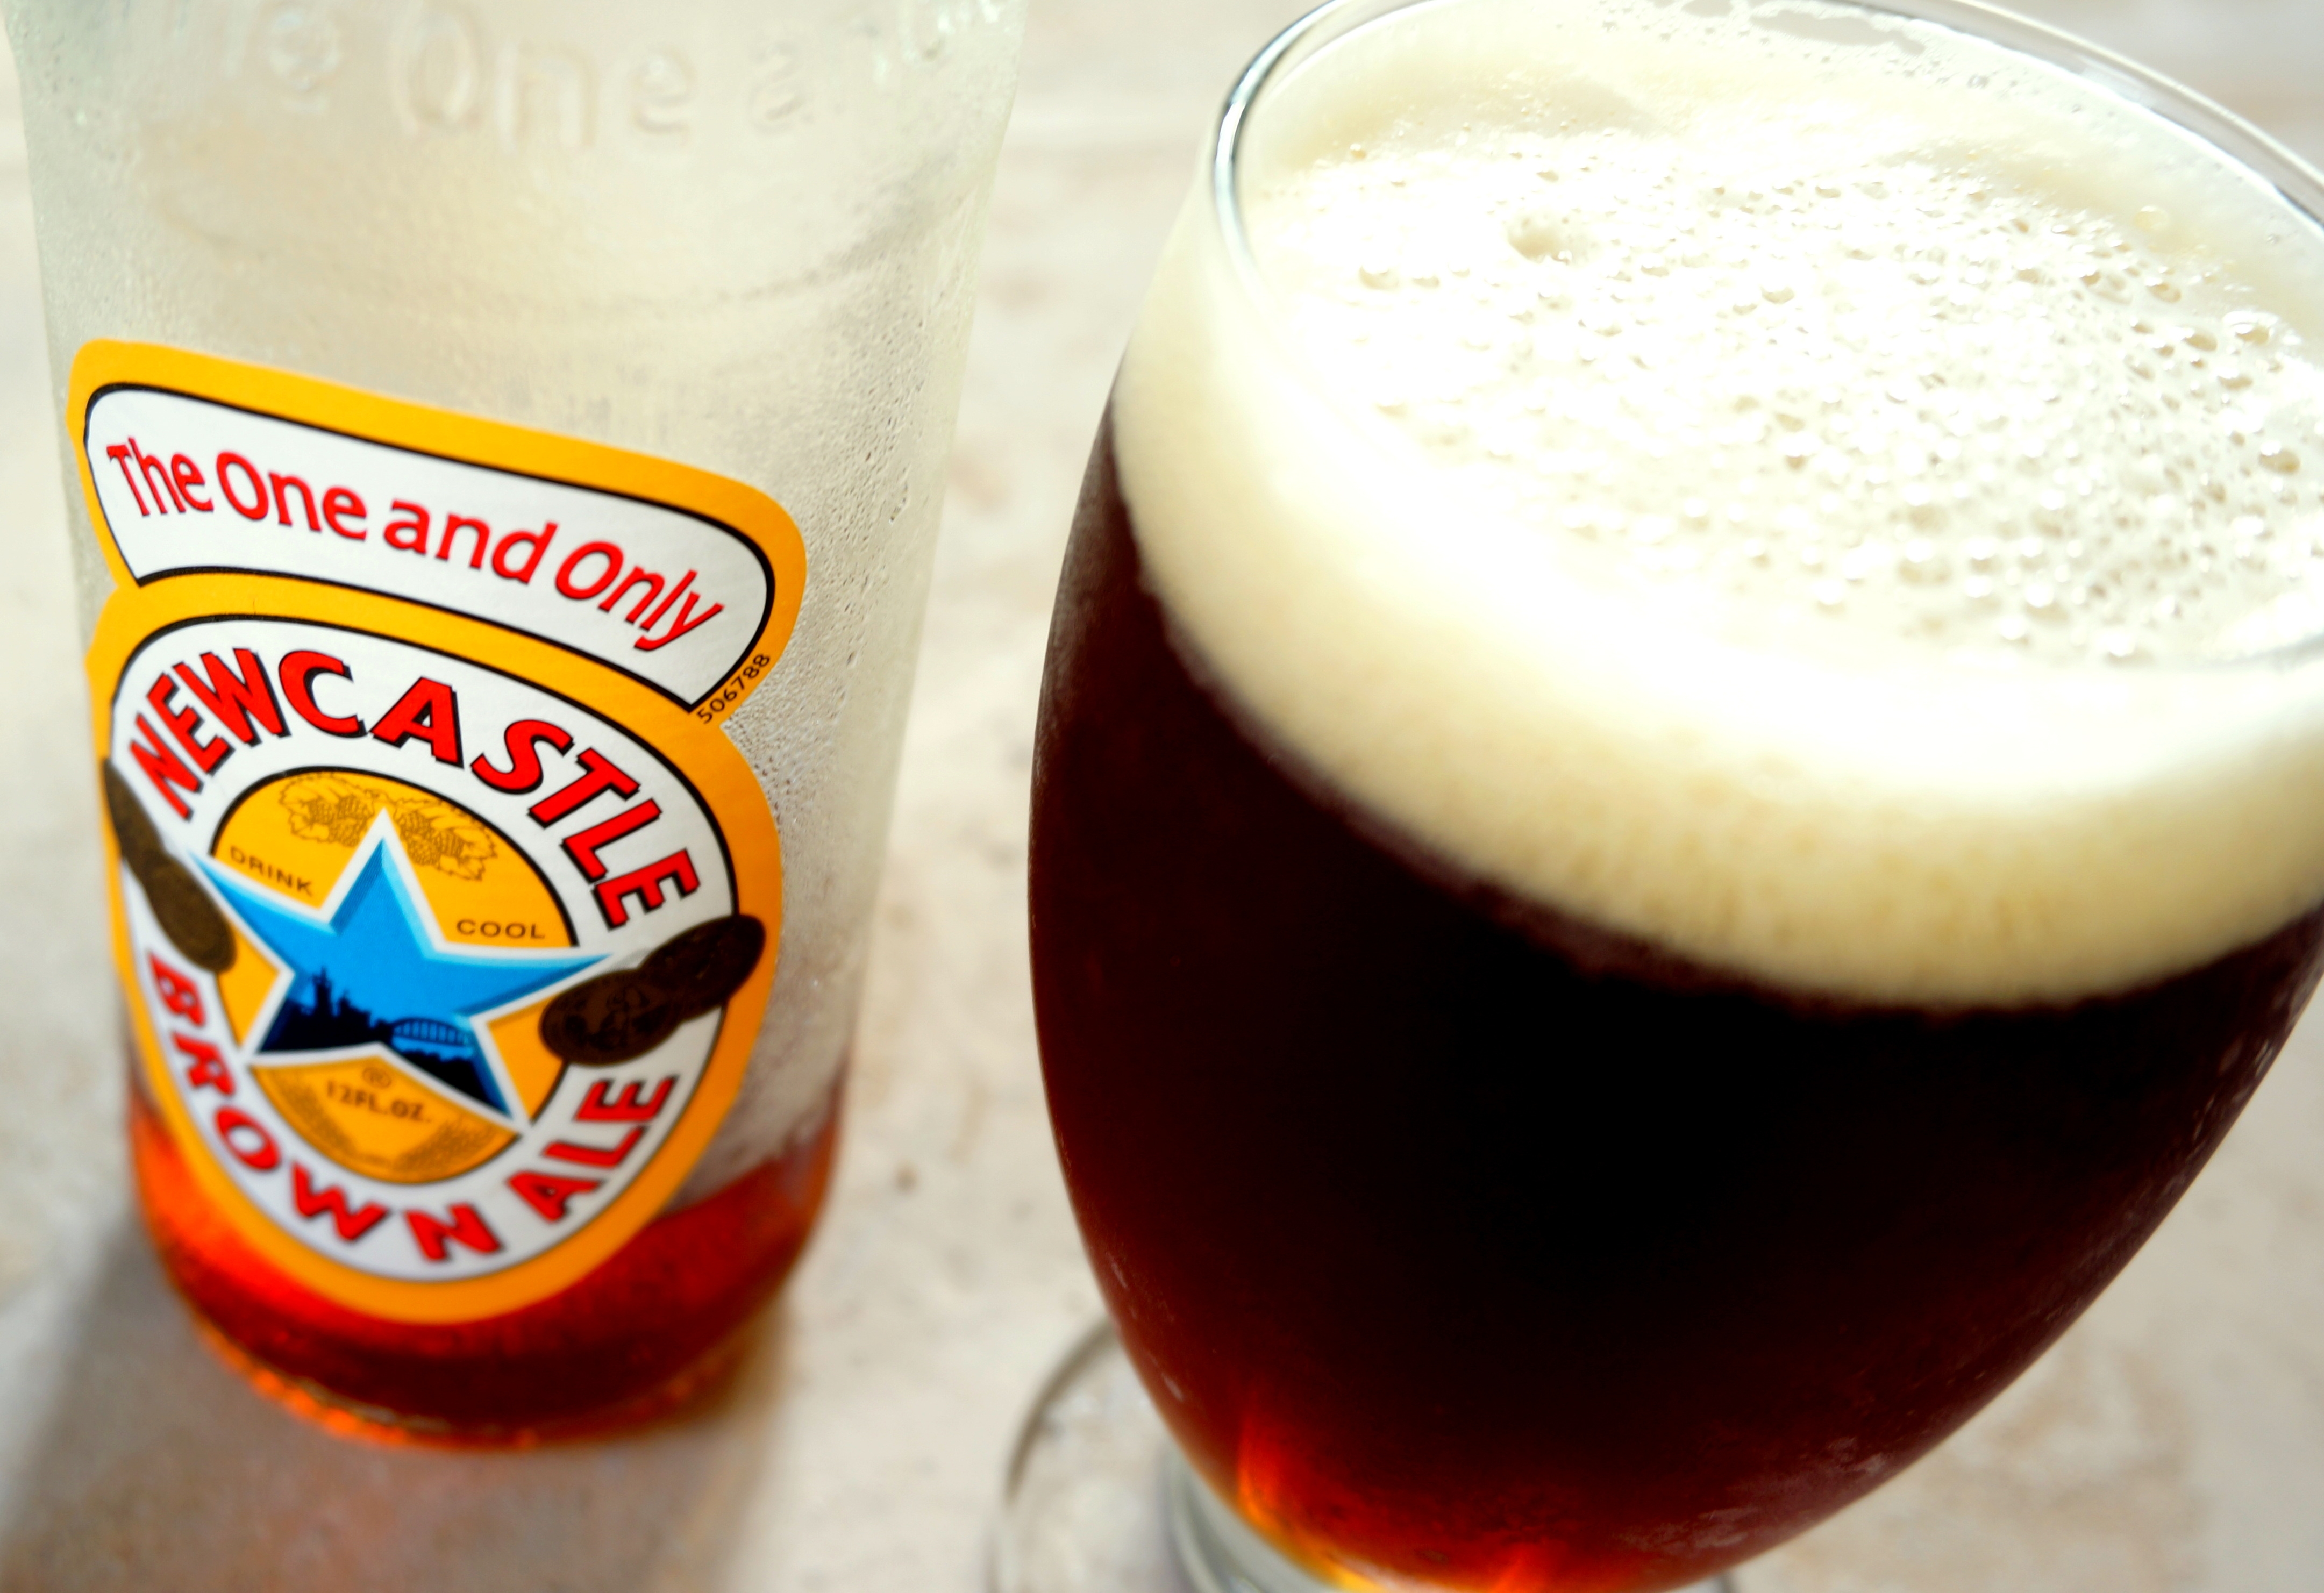 A bottle of Newcastle brown ale poured into a glass